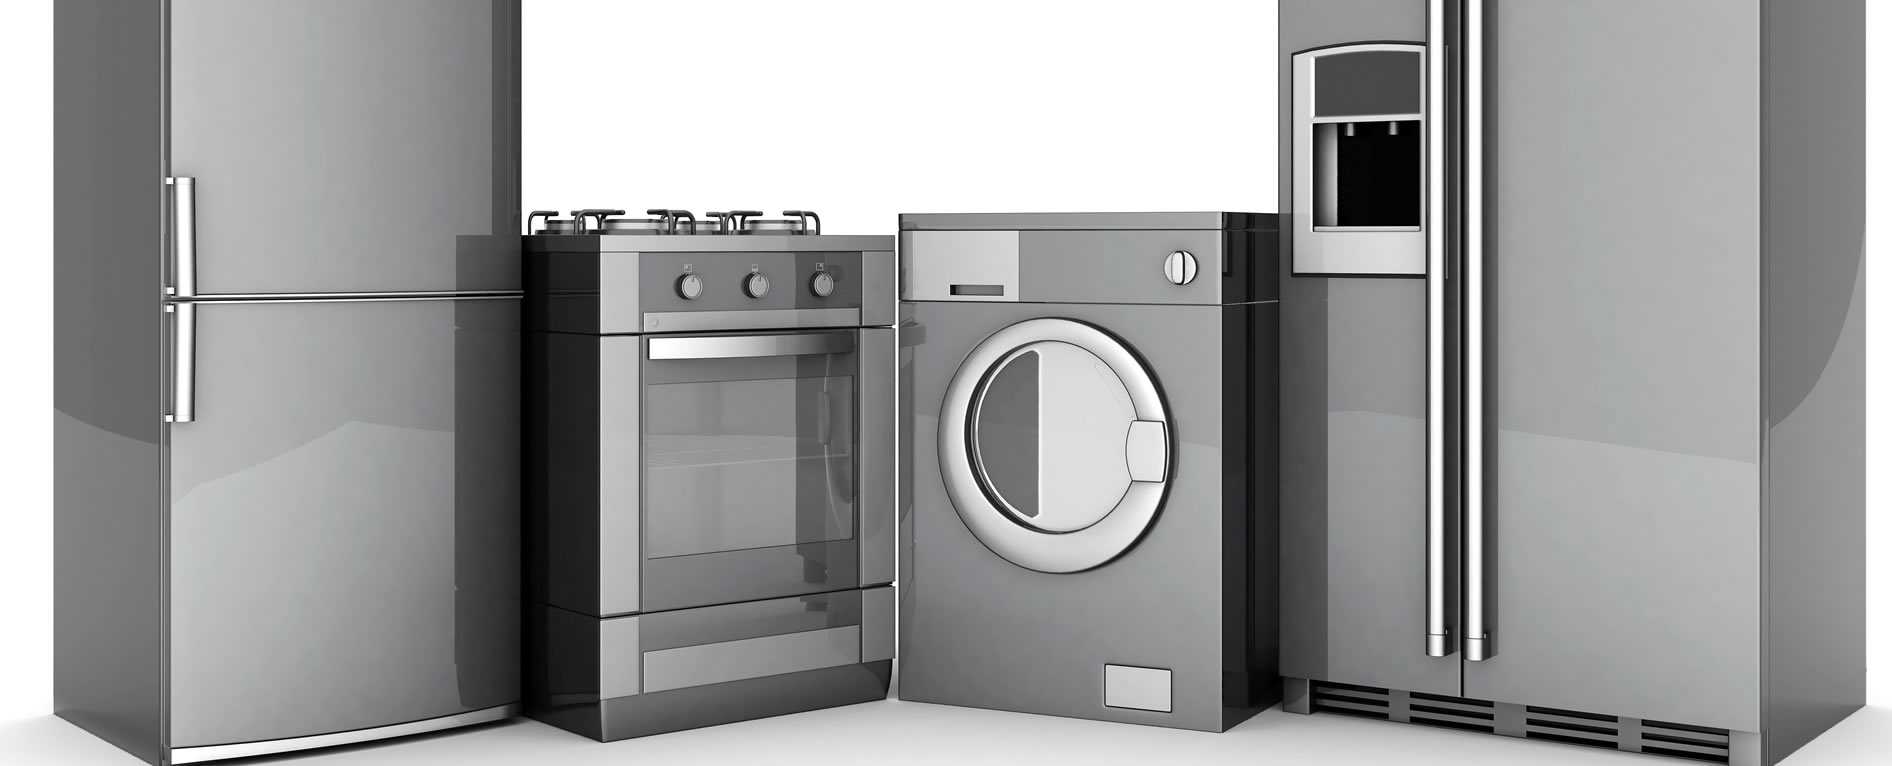 Home improvement and household appliances news and updates